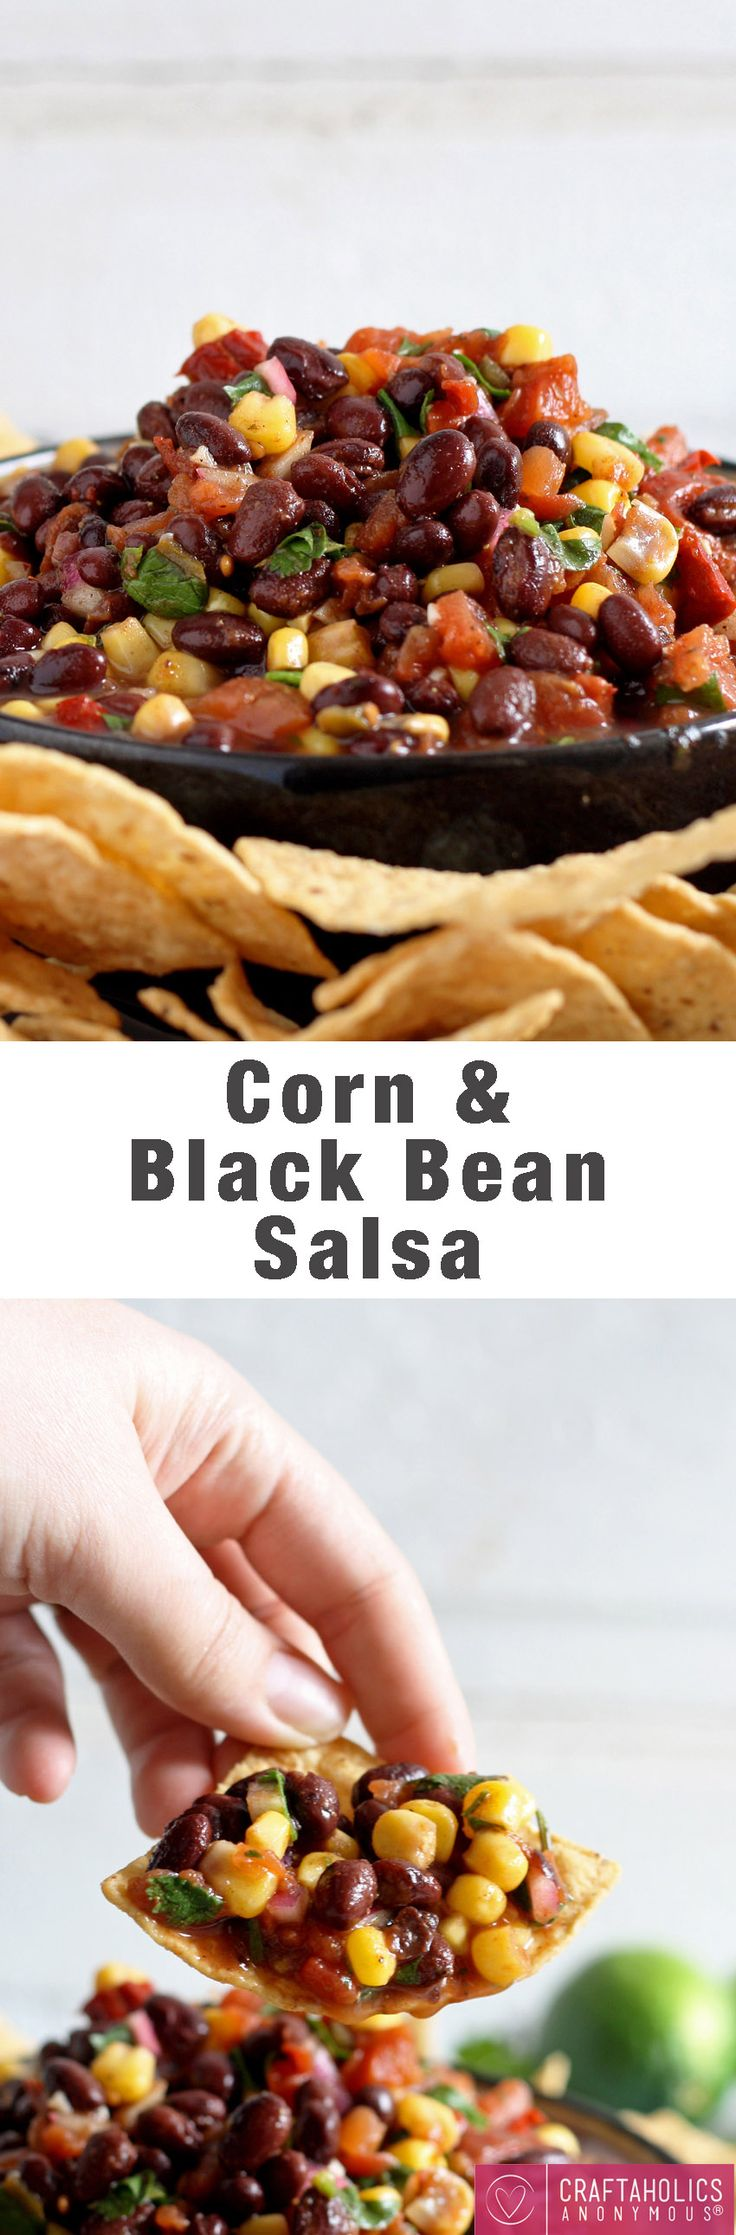 Mouth watering Corn and Black Bean Salsa || Love this recipe!